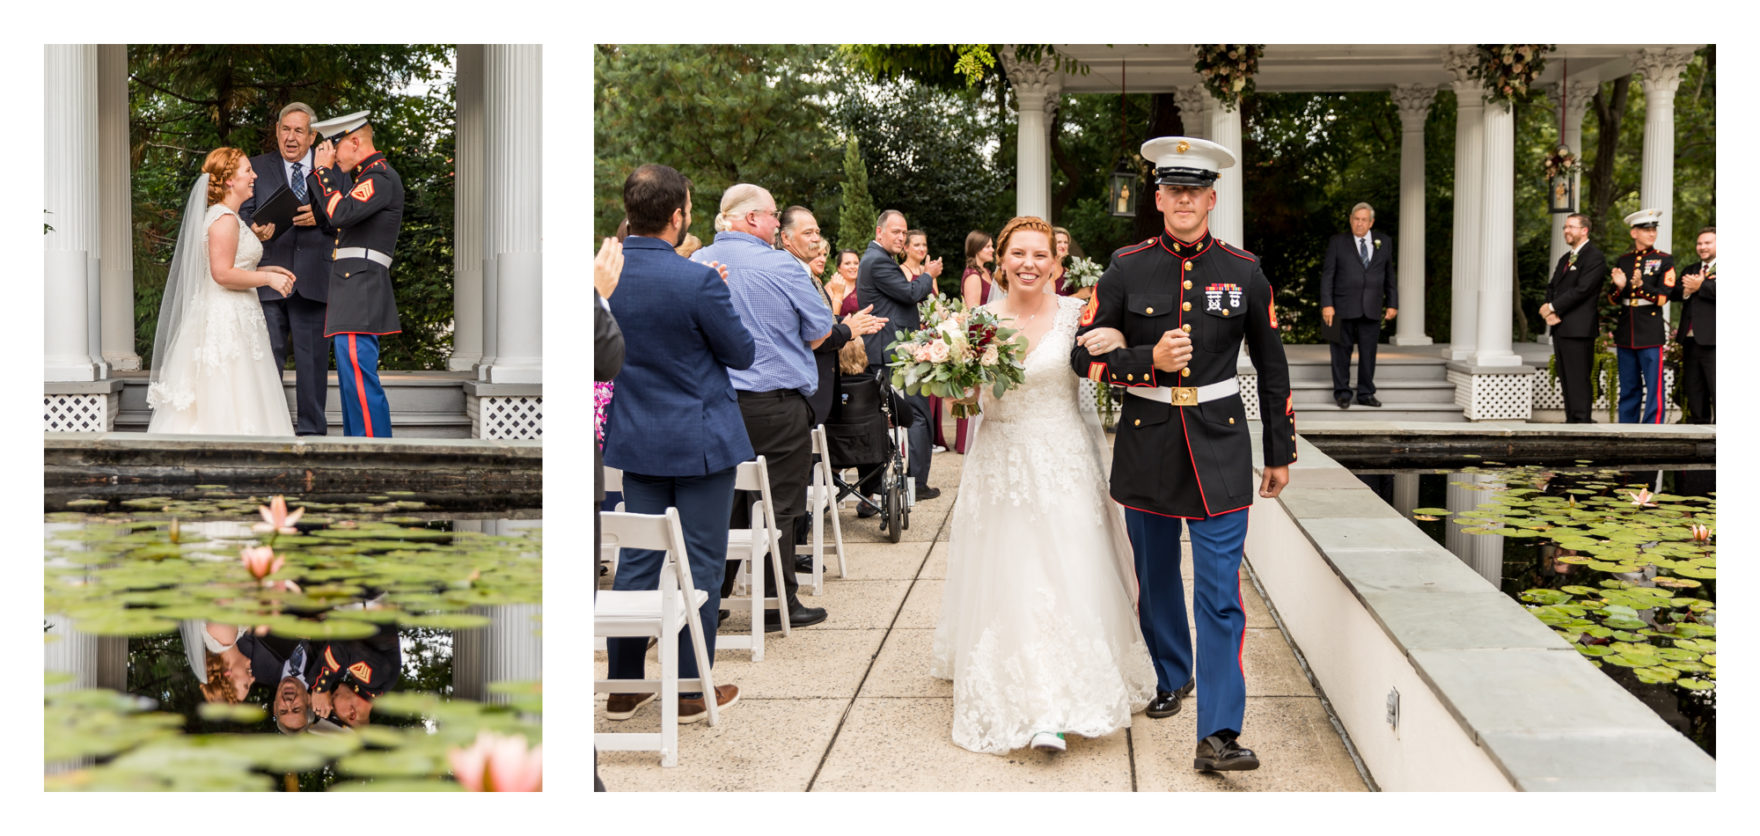 Frederick Wedding Photographer, Frederick Wedding, Ceresville Mansion Wedding, Fall Wedding, Burgundy Wedding, Outdoor Wedding, Military Wedding, Marine Wedding,